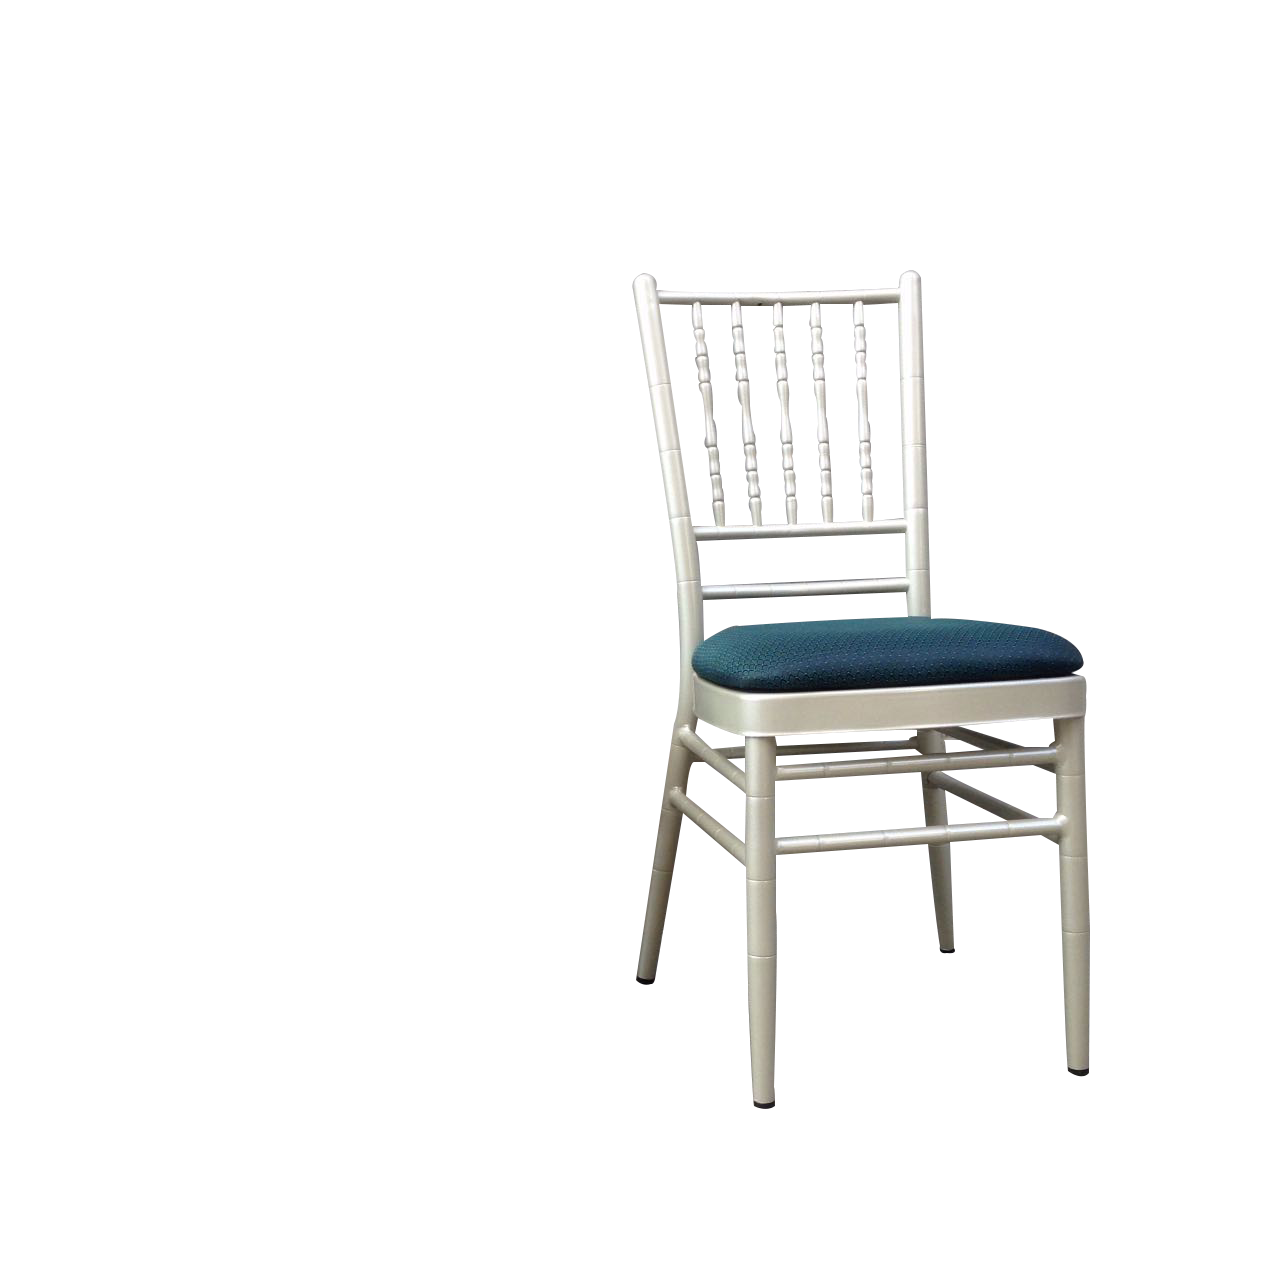 Cheap PriceList for Comfortable Auditorium Chair -